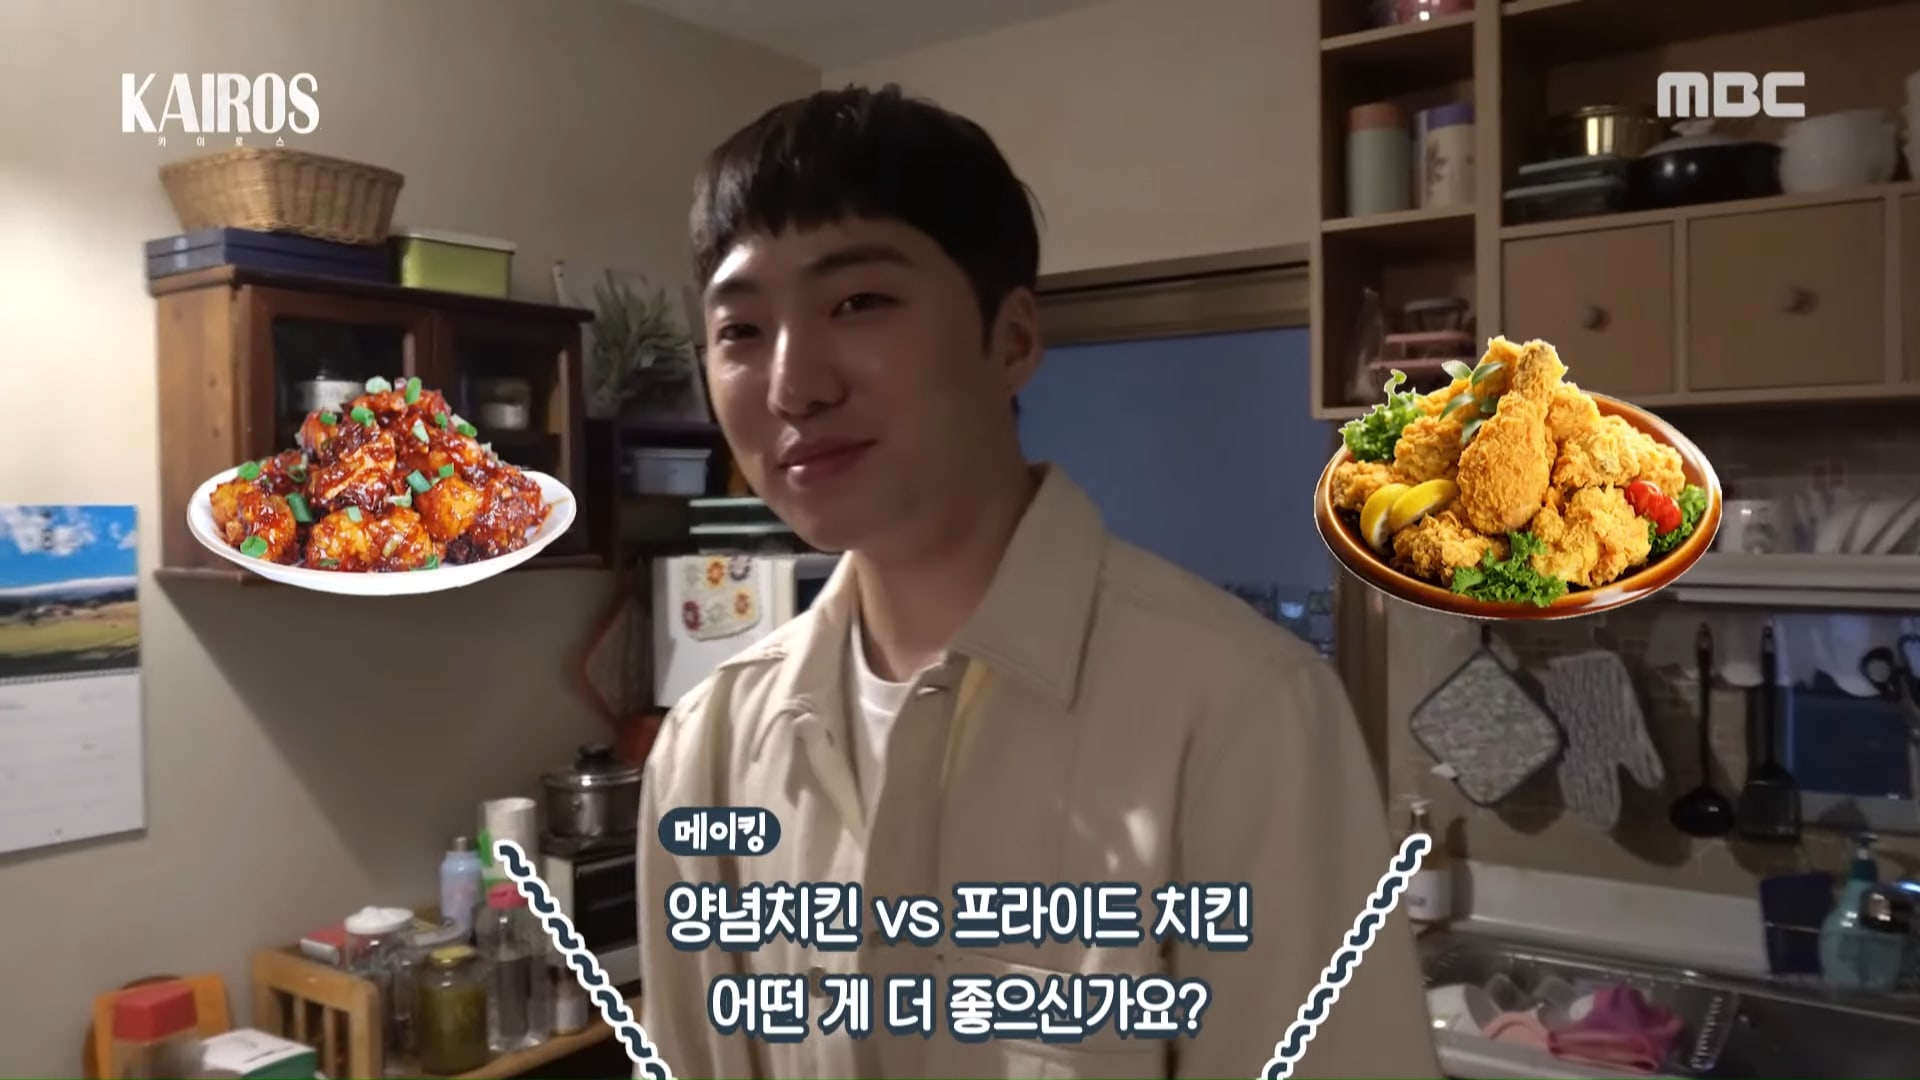 Kairos: Lee Se Young, WINNER's Kang Seung Yoon and Lee Joo Myung are distracted by chicken while filming